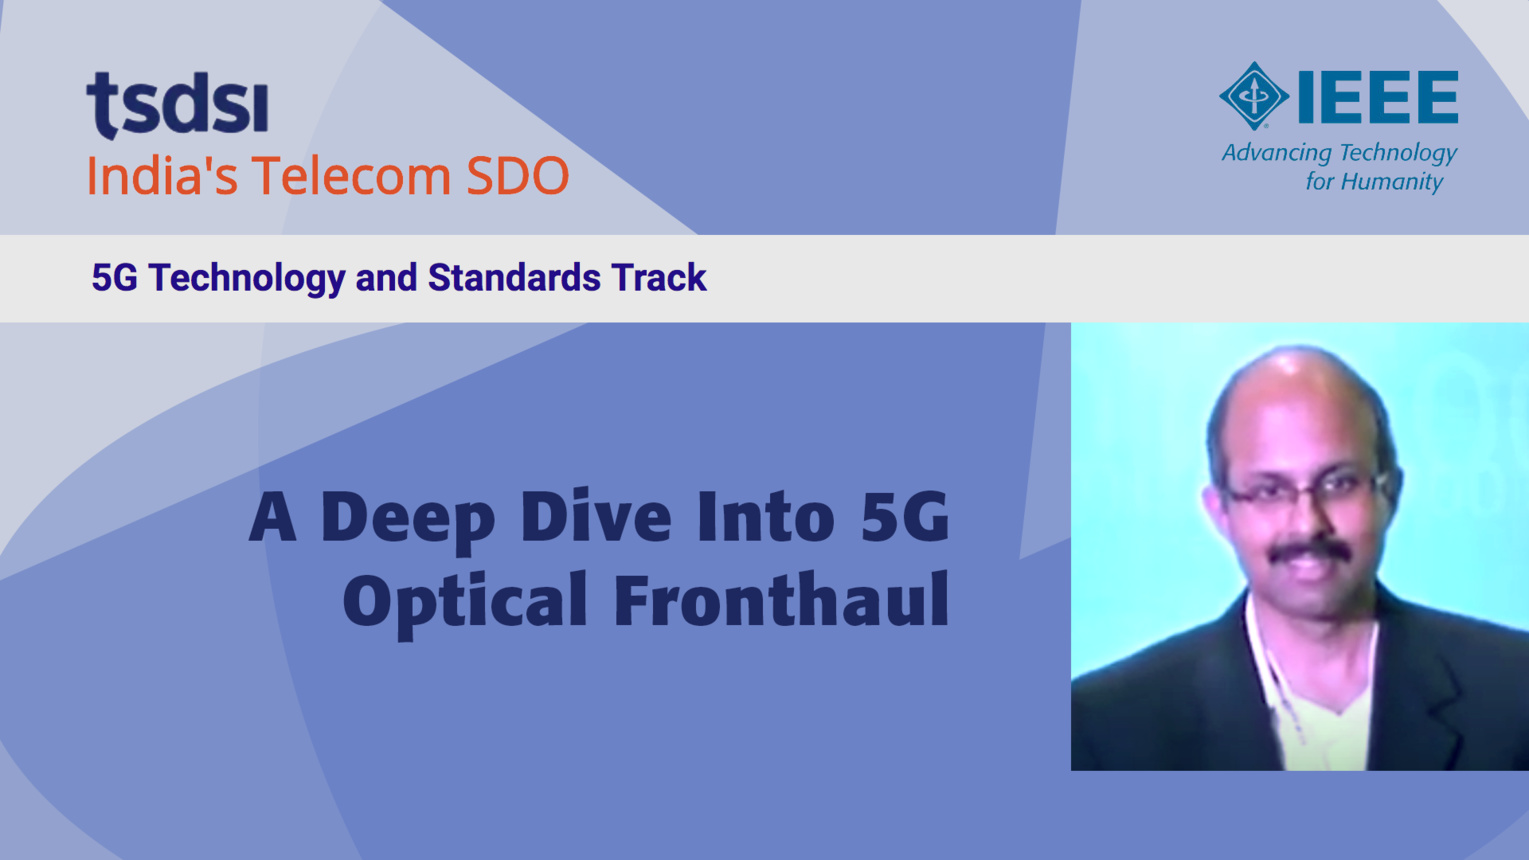 A Deep Dive Into 5G Optical Fronthaul - Jishnu Aravindakshan - India Mobile Congress, 2018